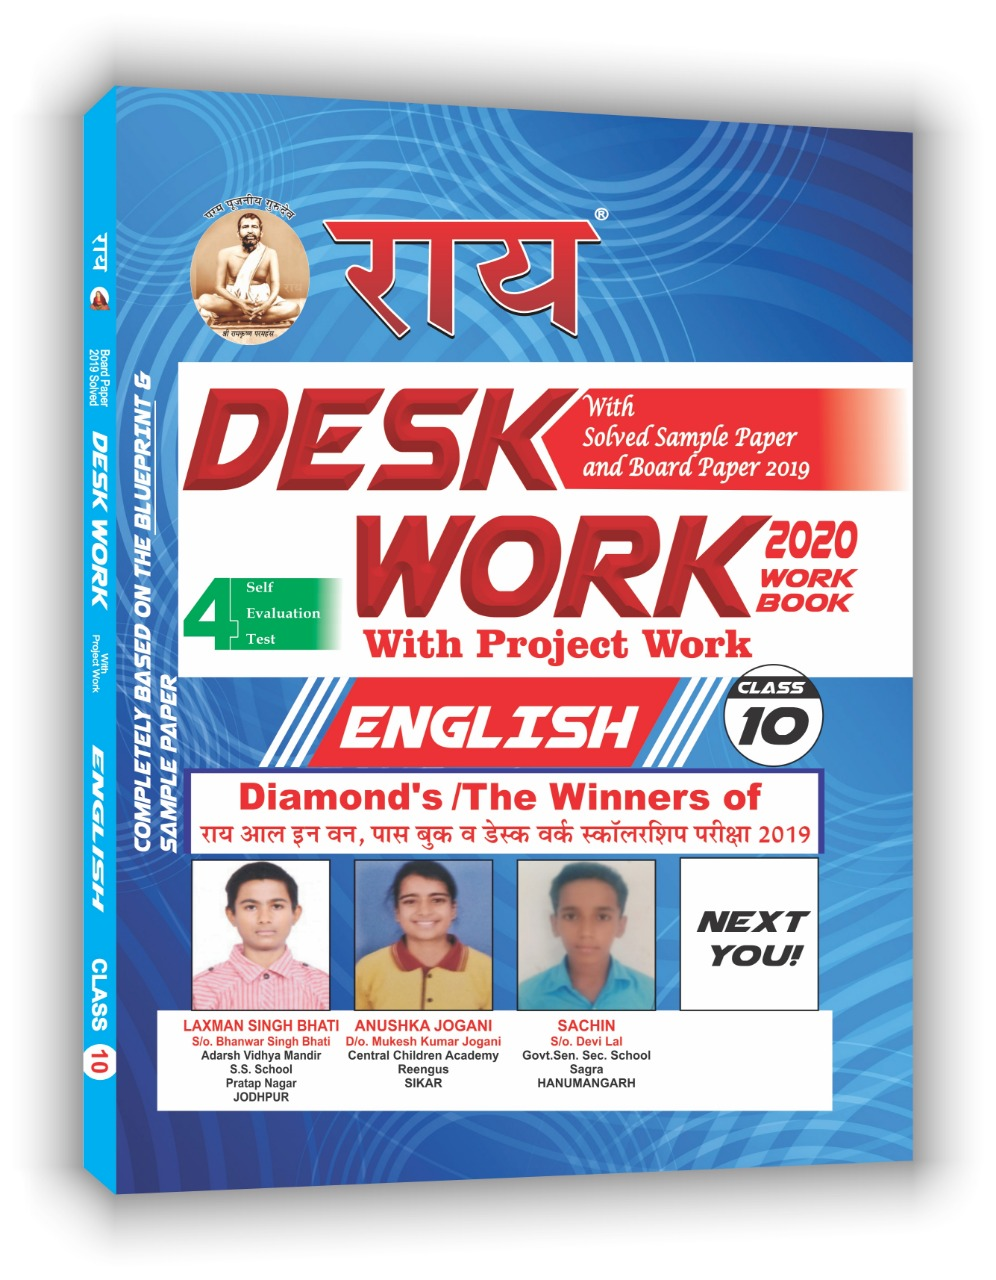 Rai Desk Work 2020 English Class 10th with free Scholarship Exam Form( Blue Print , Board Paper 2019 Solved ,1 Board Sample Paper+ 10 Model Papers +4 Self Evaluation Papers )